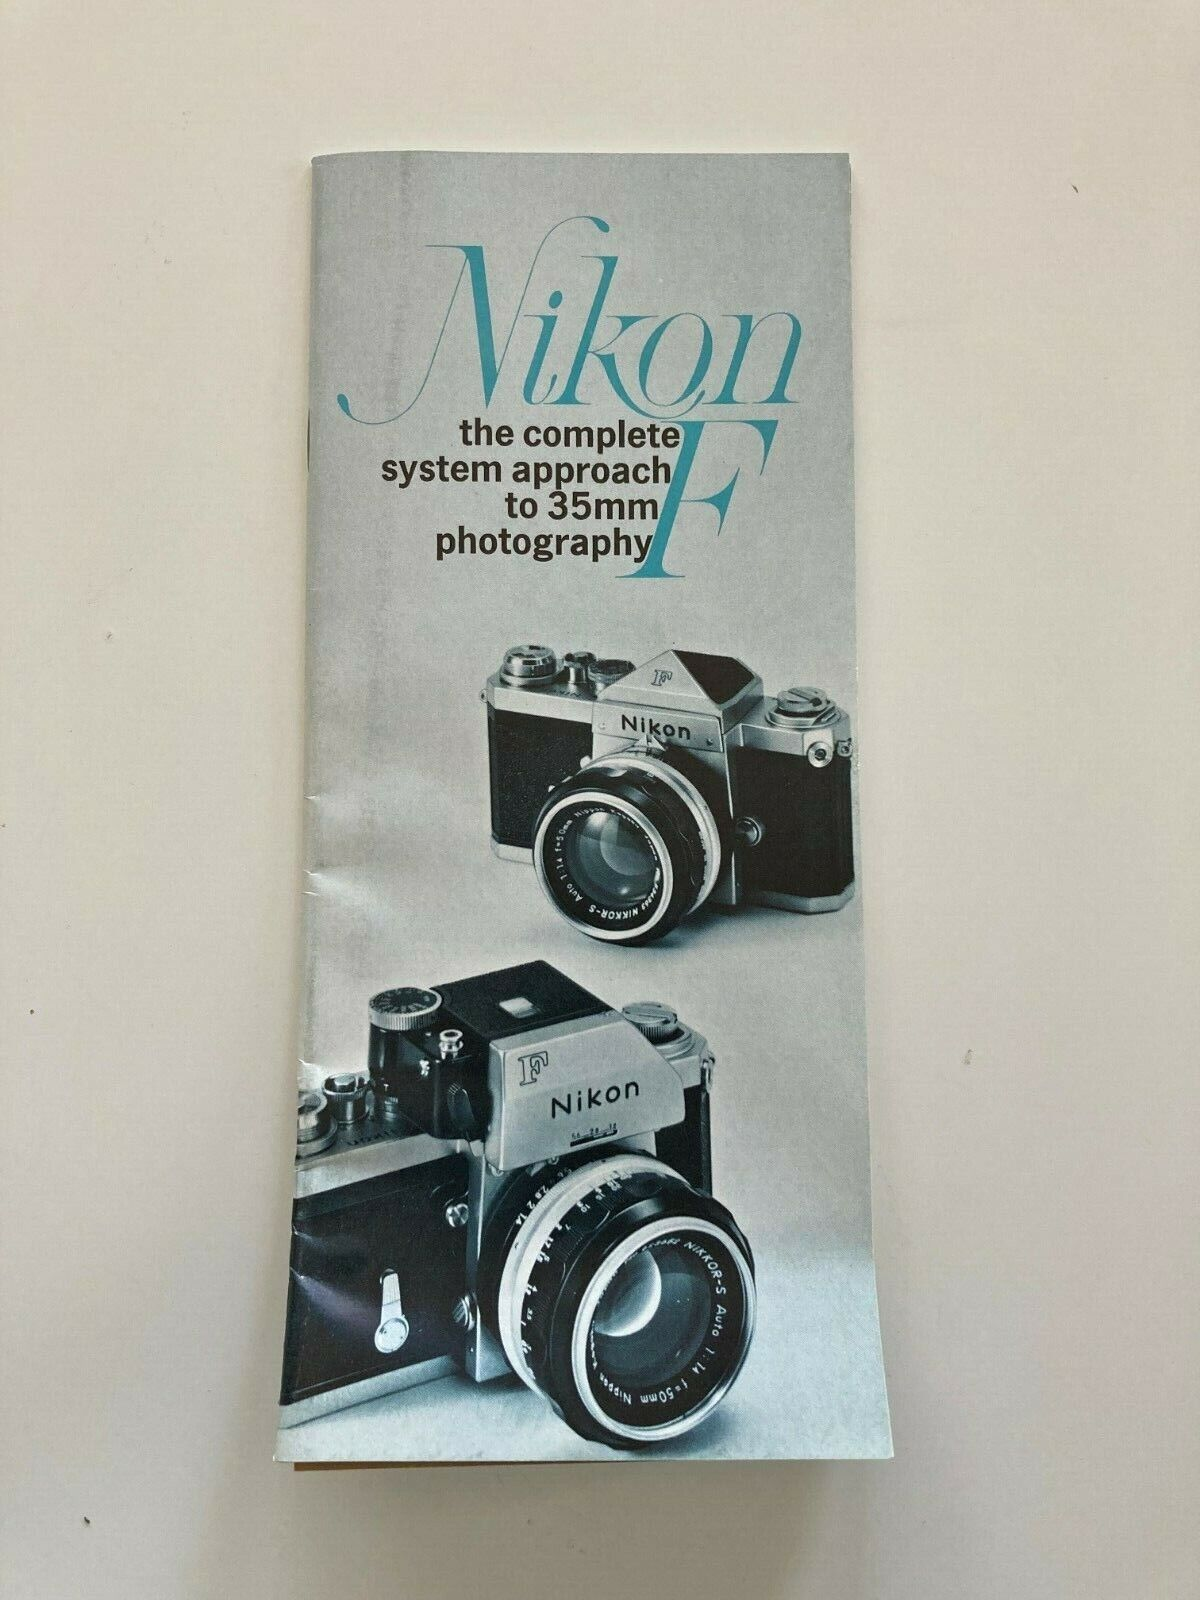 1960 s Nikon F Complete System Approach To 35mm Photography Product Brochure - $10.00